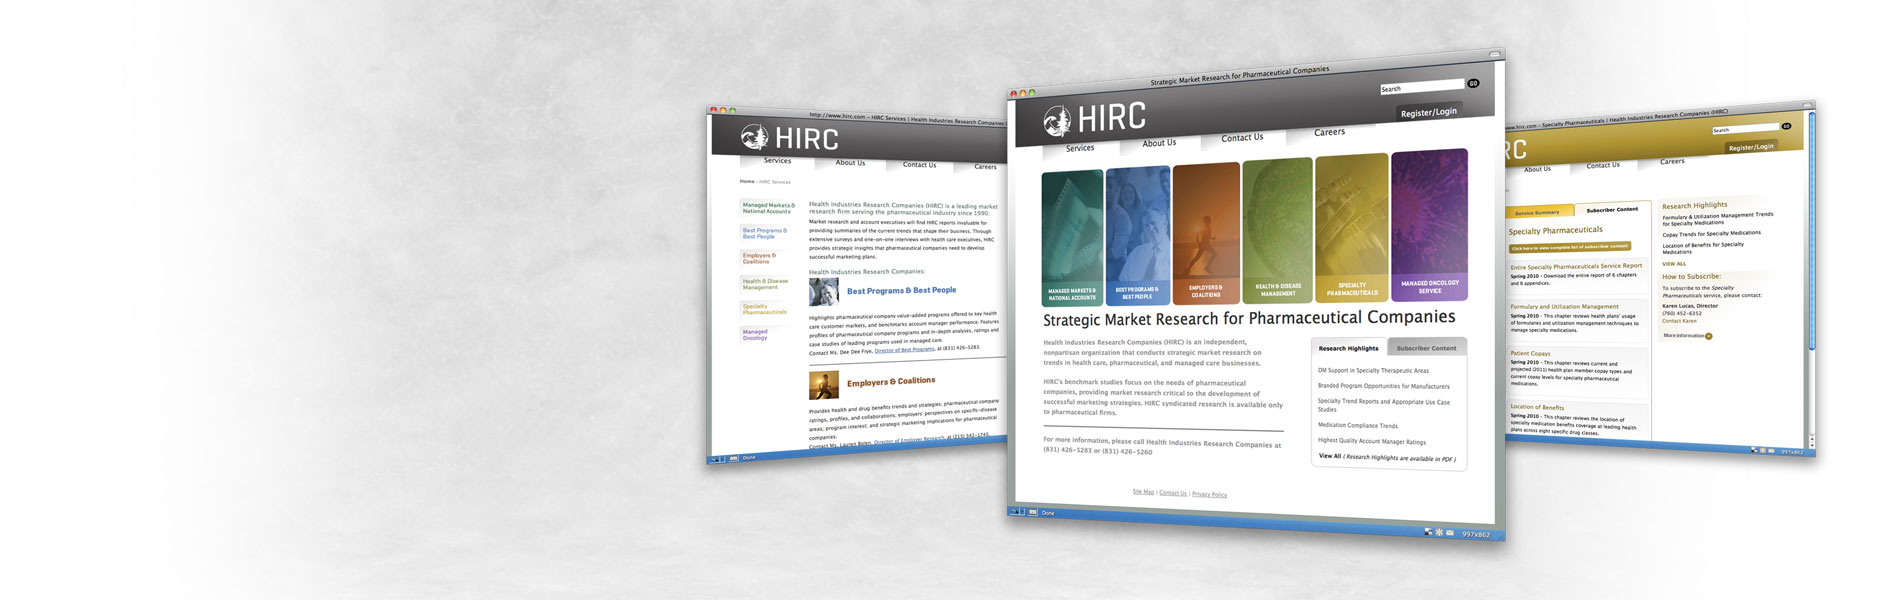 hirc-website1